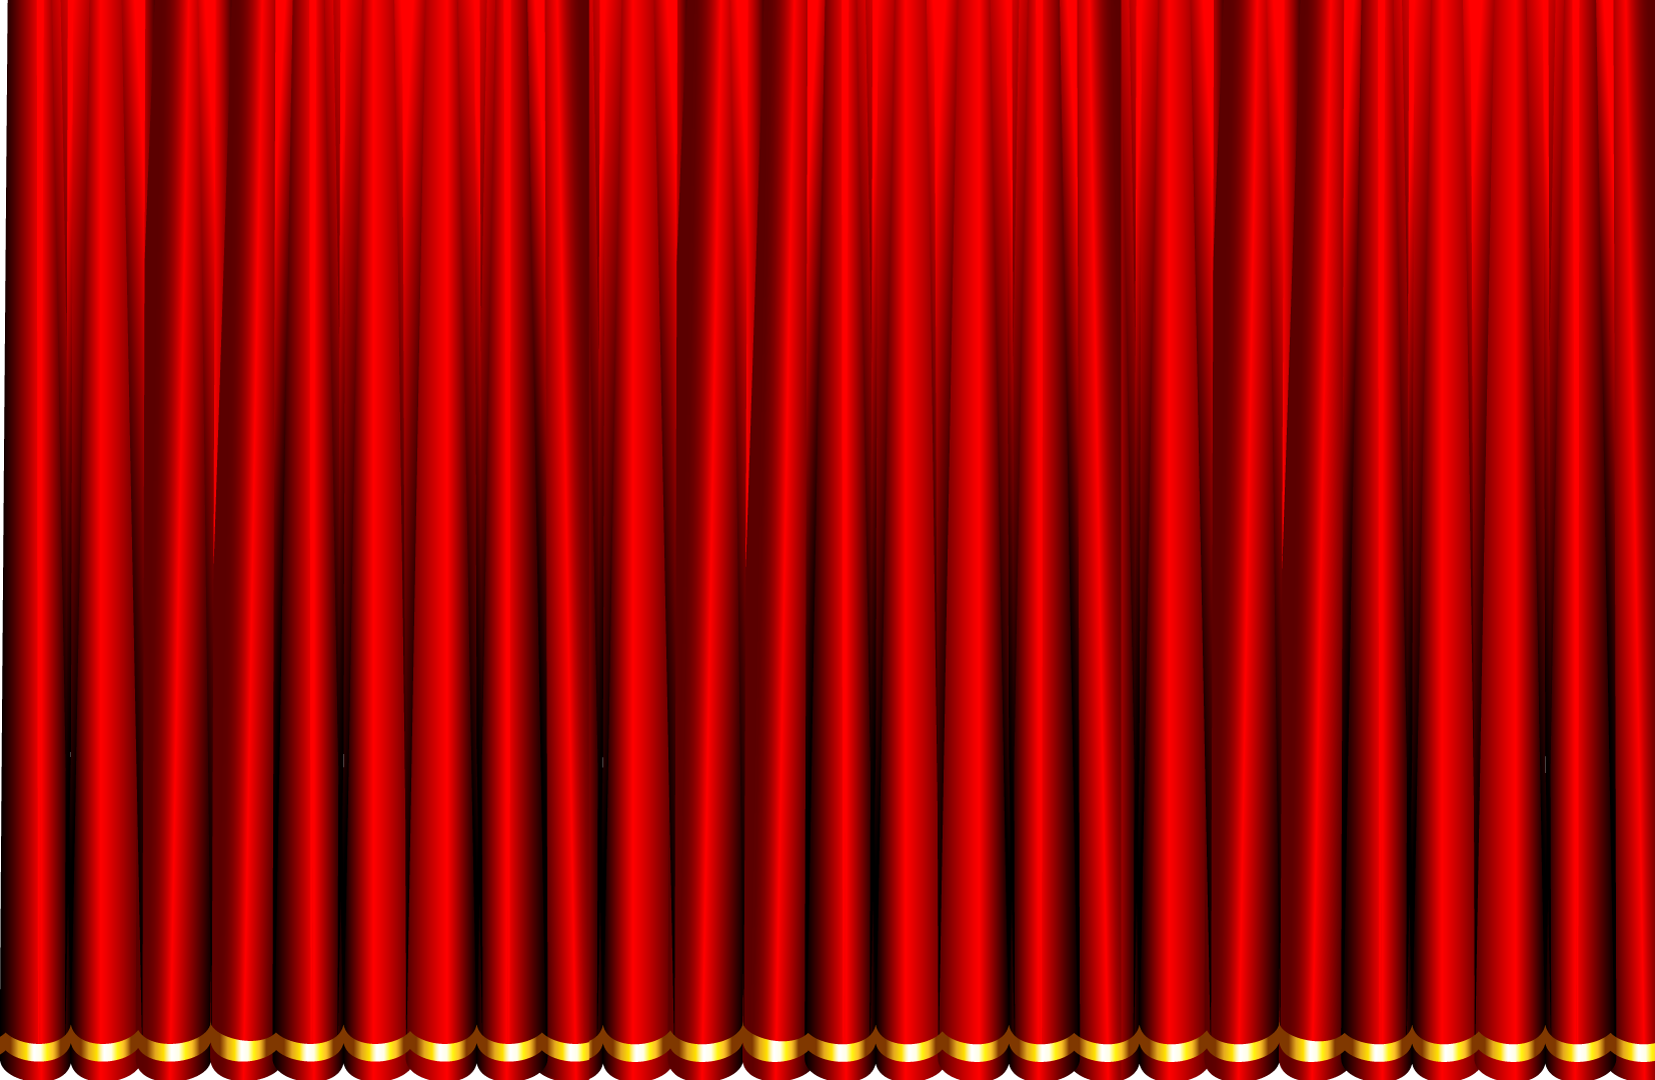 red_curtain_r.png